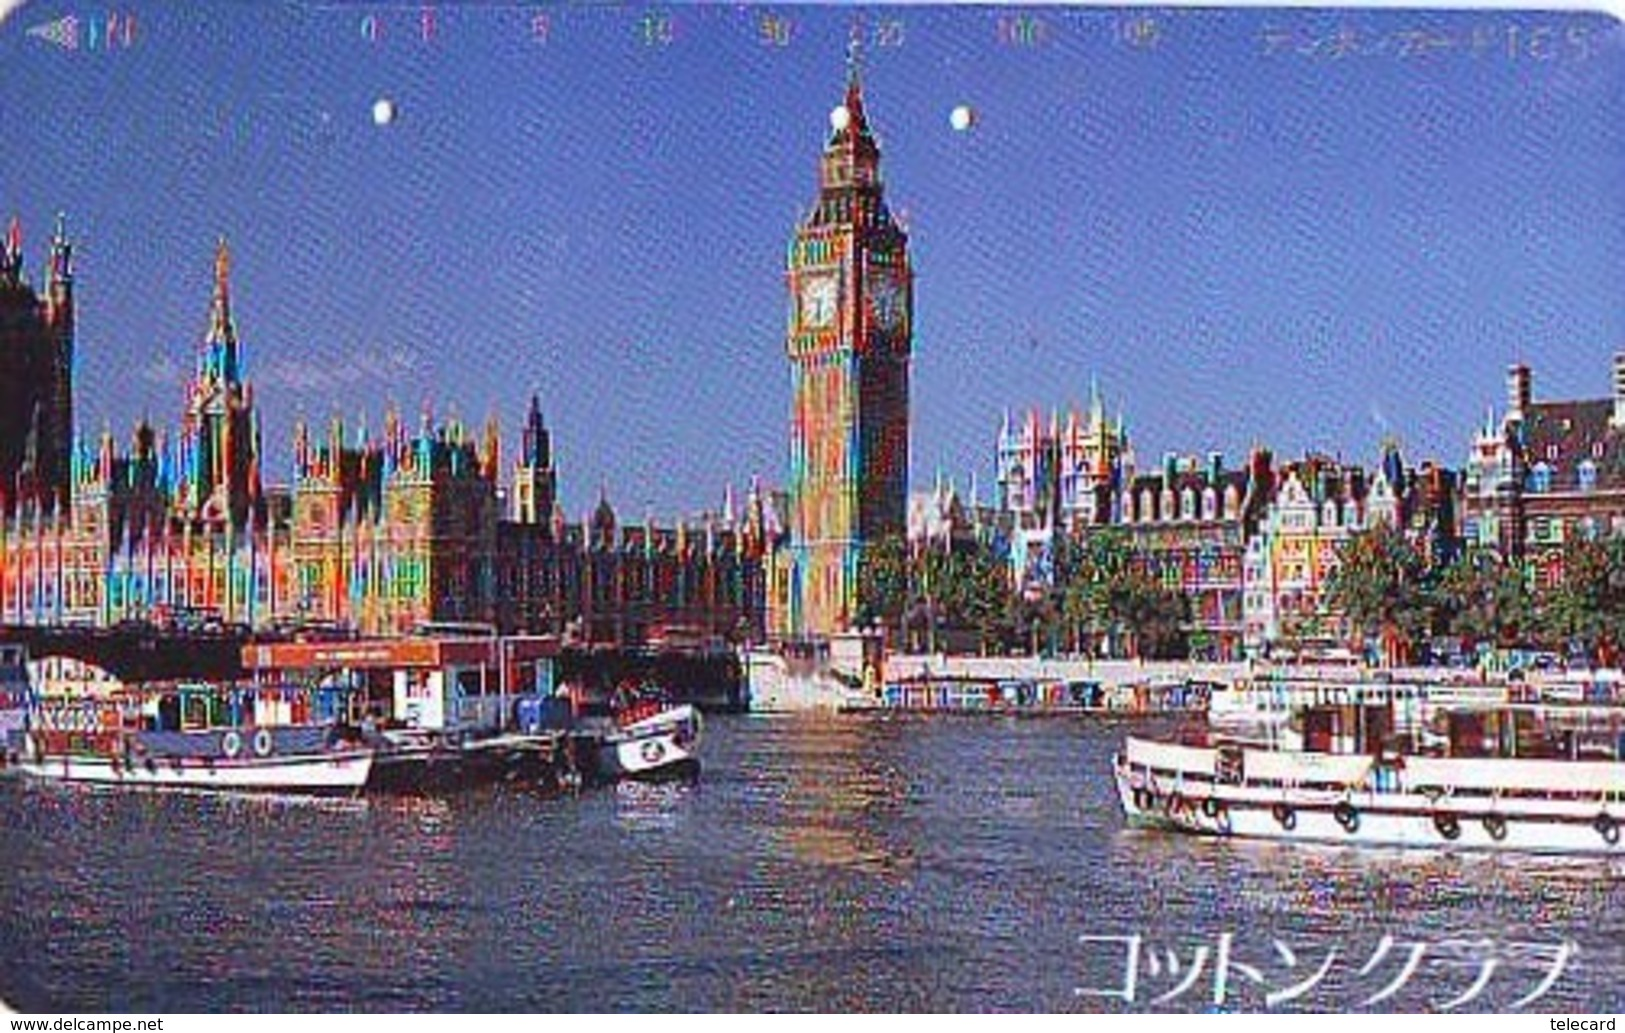 Télécarte Japon ANGLETERRE * LONDON  (311) GREAT BRITAIN Related * ENGLAND Phonecard Japan * - Paysages